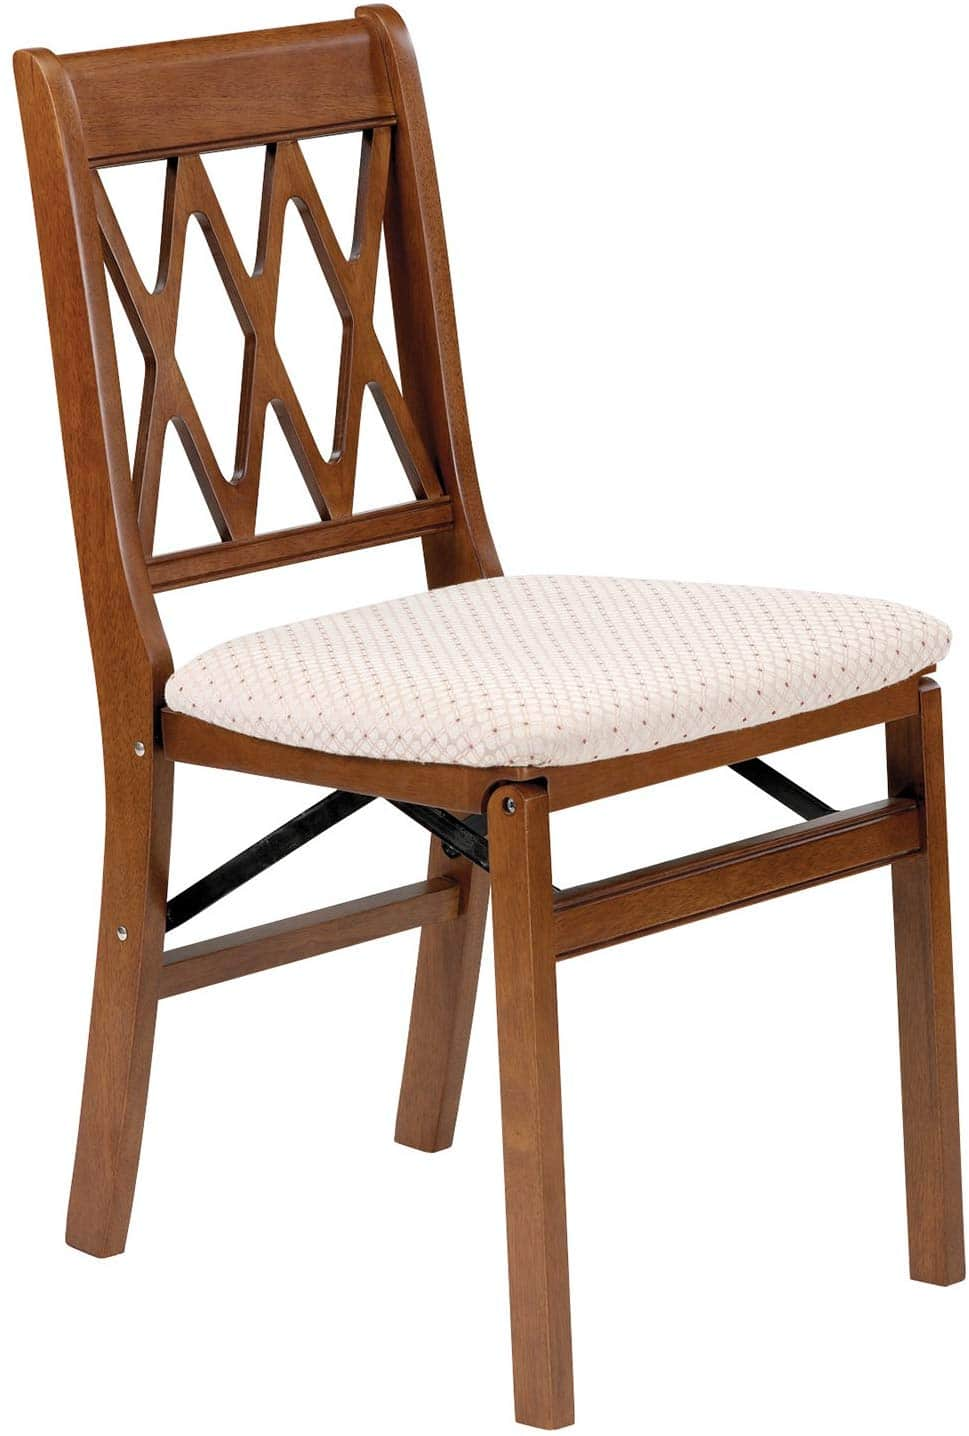 Stakmore Lattice Back Folding Chair